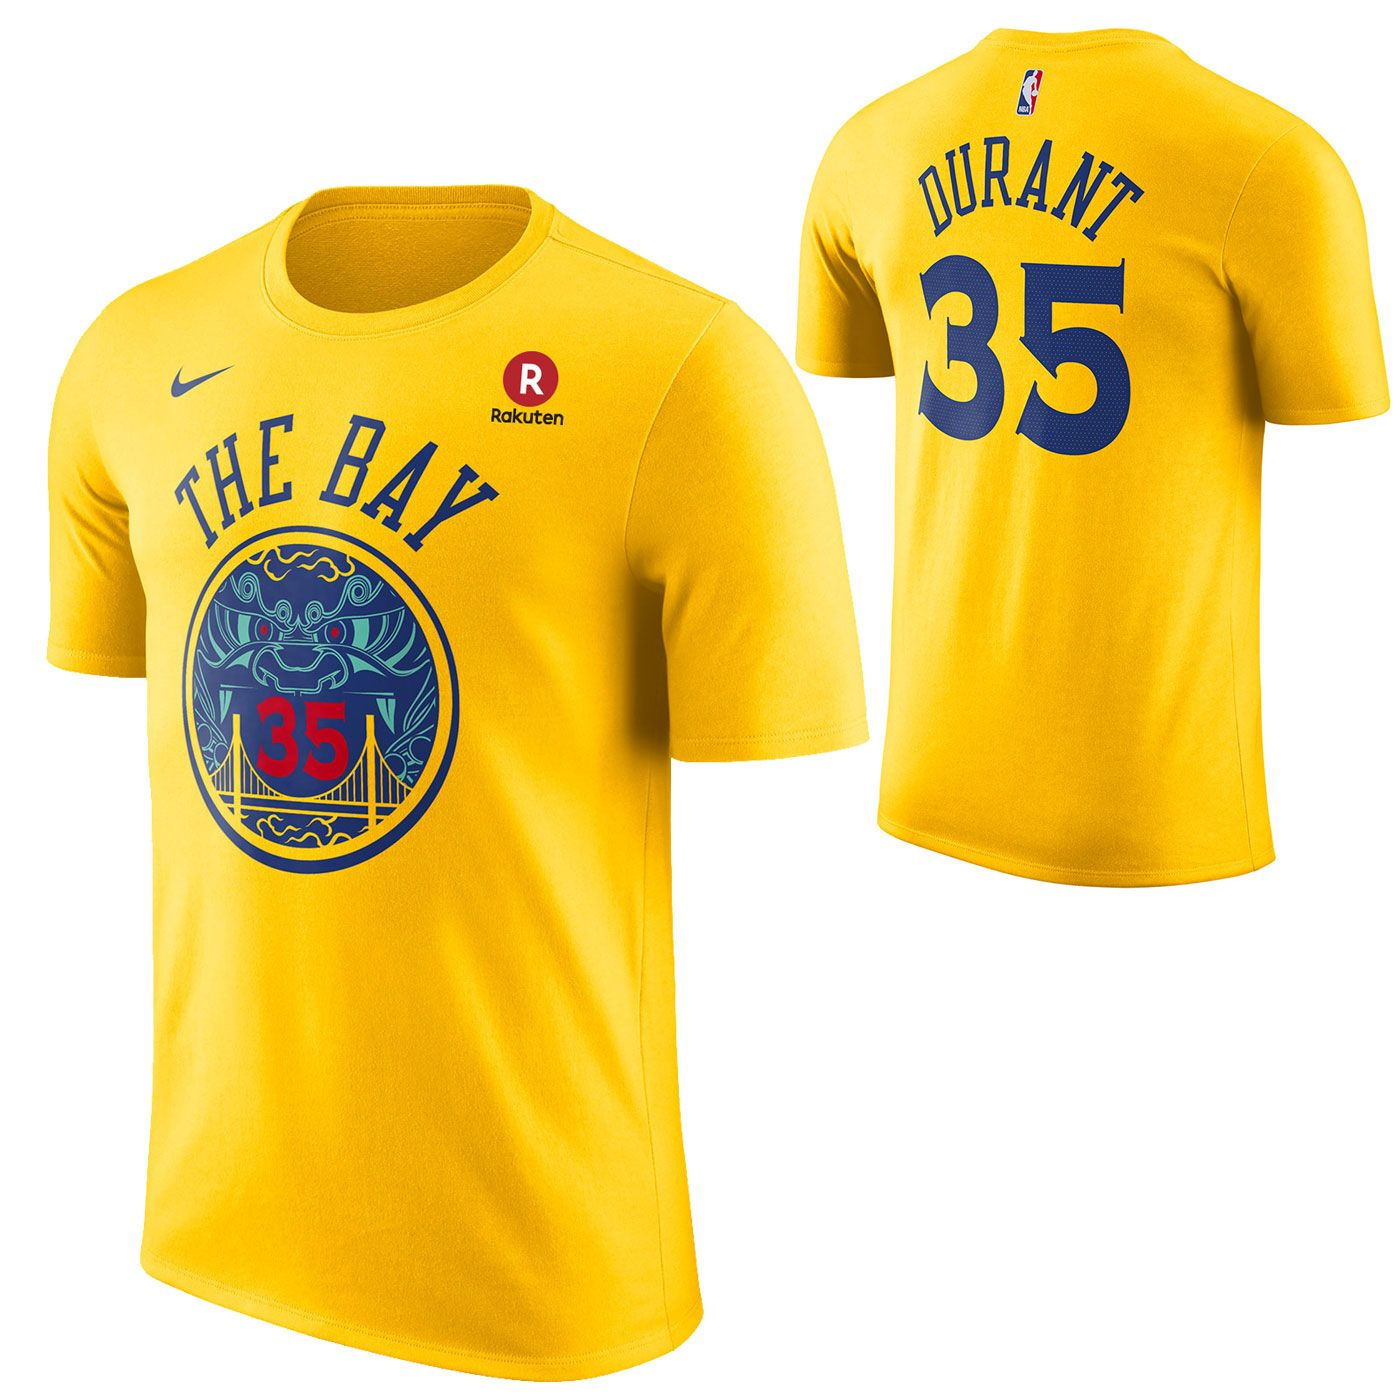 Golden State Warriors Nike Dri-FIT Men s City Edition Kevin Durant  35  Chinese Heritage Game Time Name   Number Tee - Gold da2cc7511